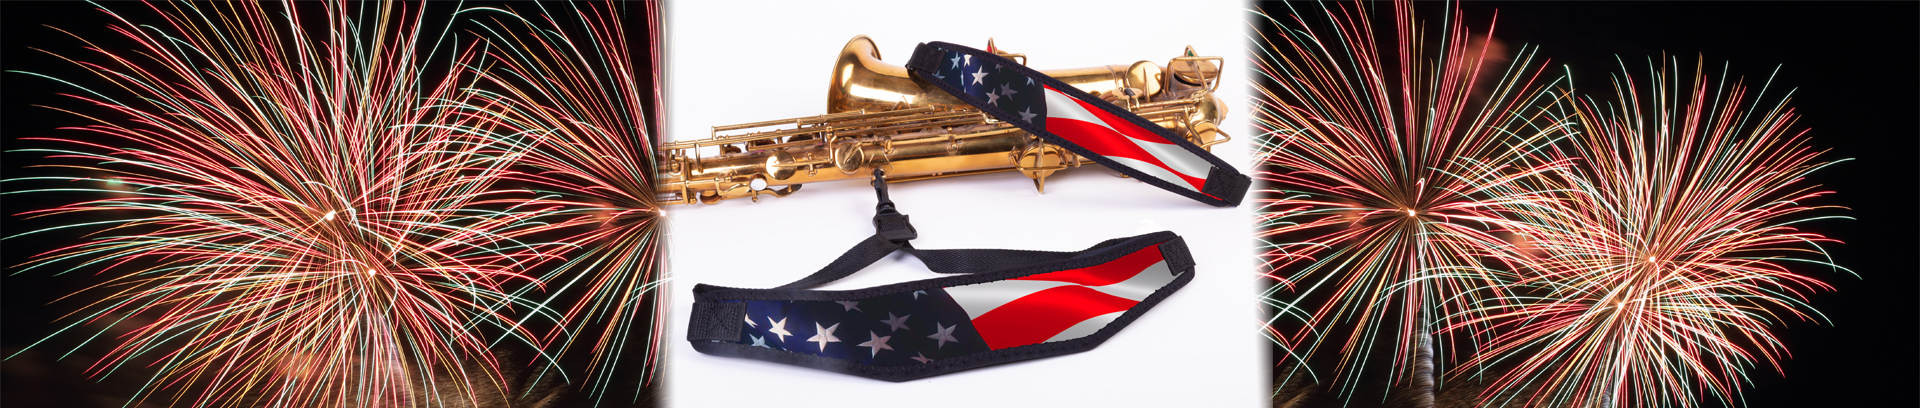 Neotech Limited-Edition American Celebration Straps with Fireworks background